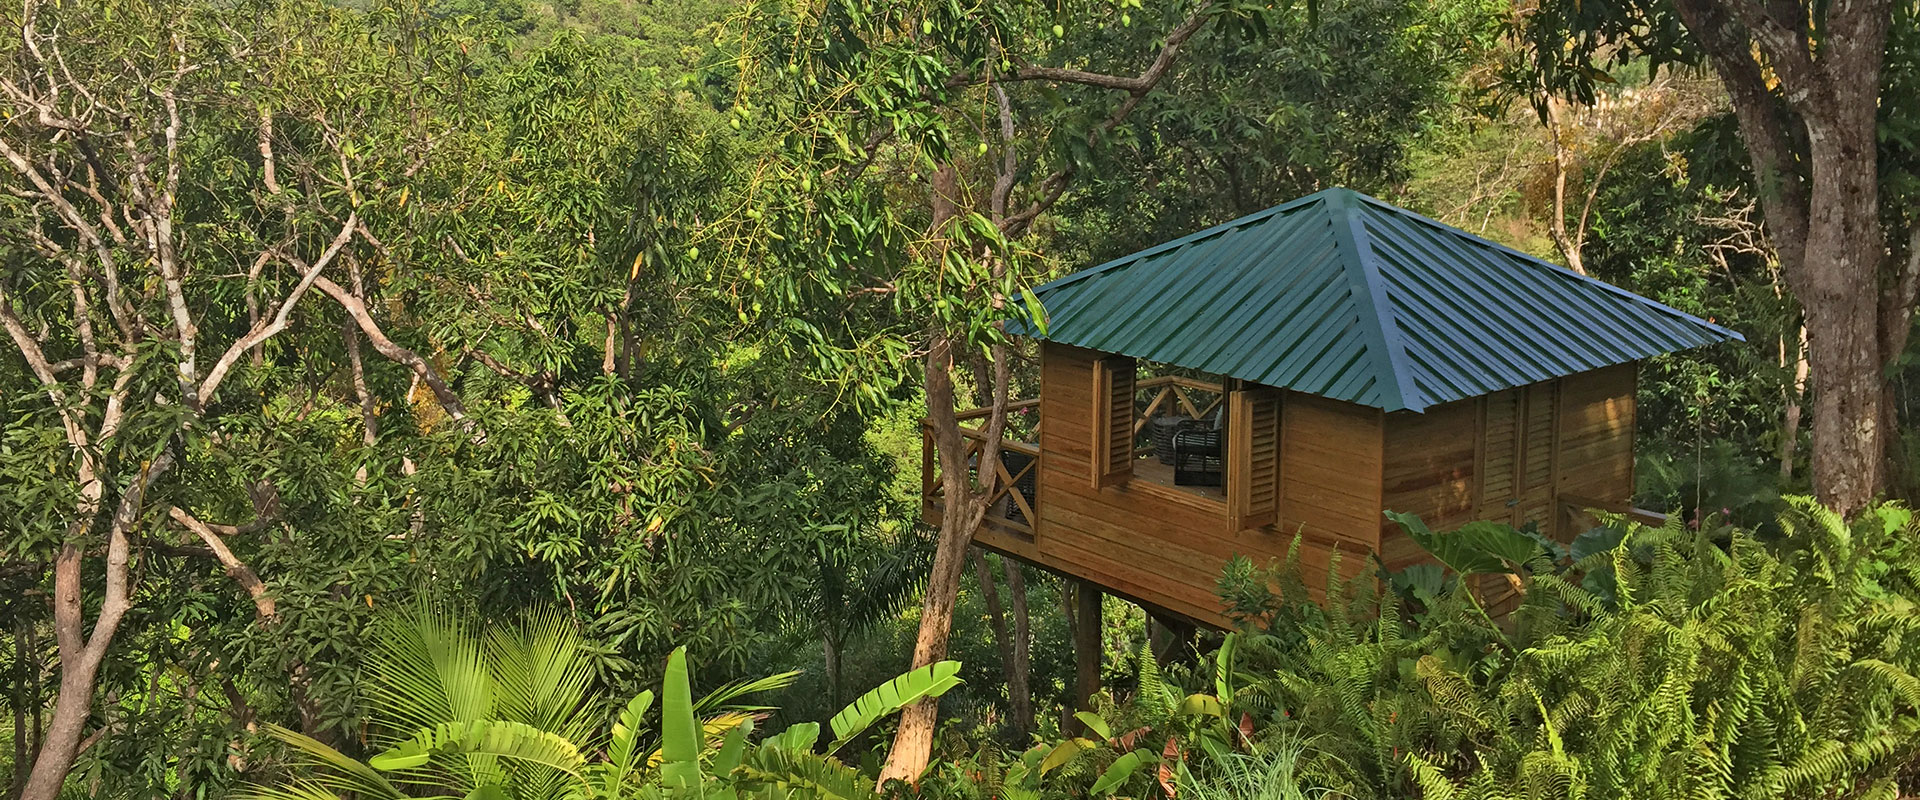 """PR Treehouse, Yunque Hotel, PR Rainforest Hotel, PR Eco Resort, PR Ecolodge, Yunque Lodging and PR Glamping"""